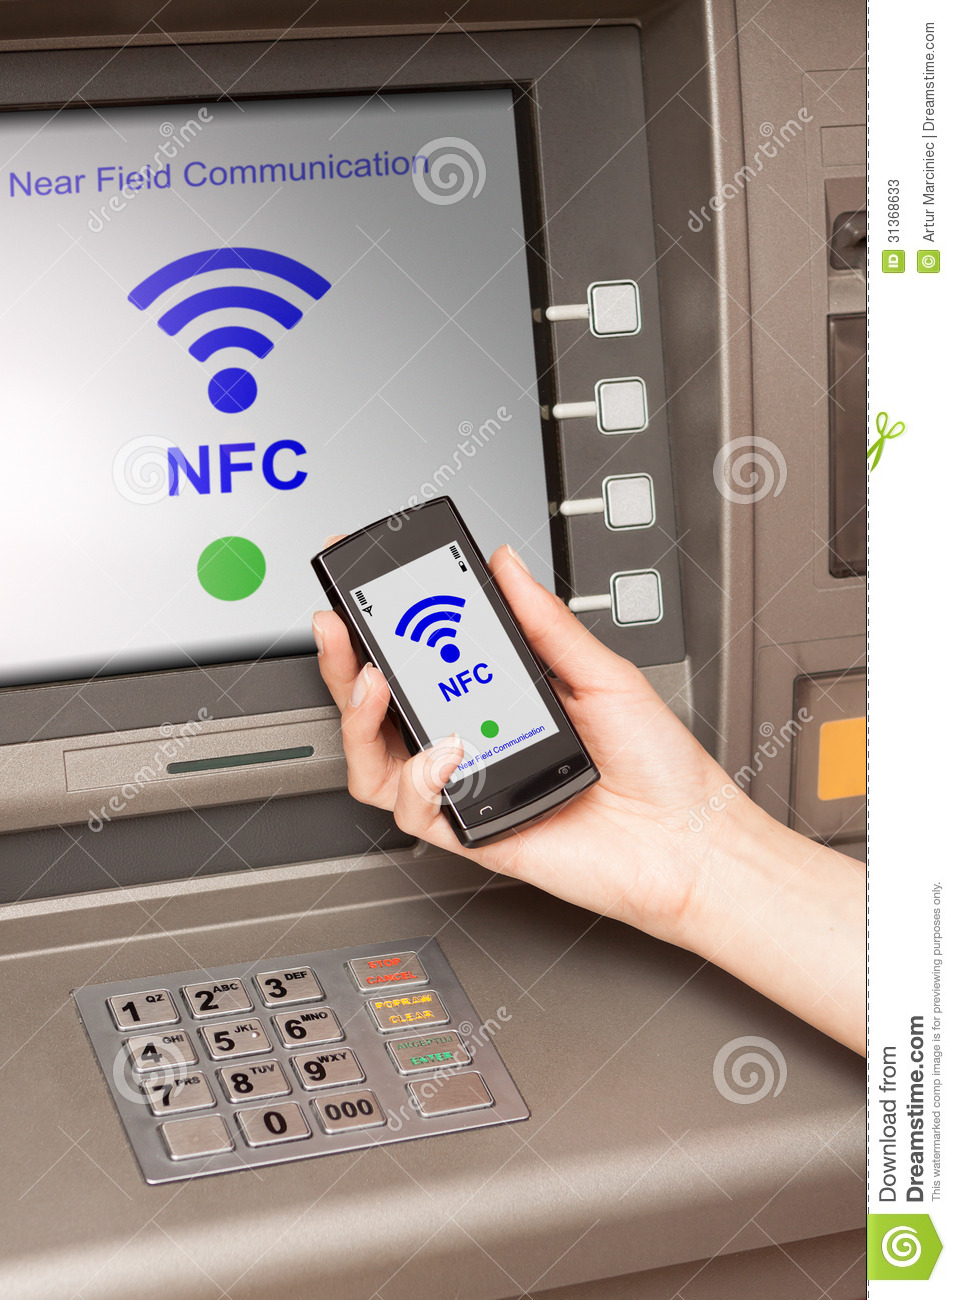 Brazilian Company Creates ATM with NFC